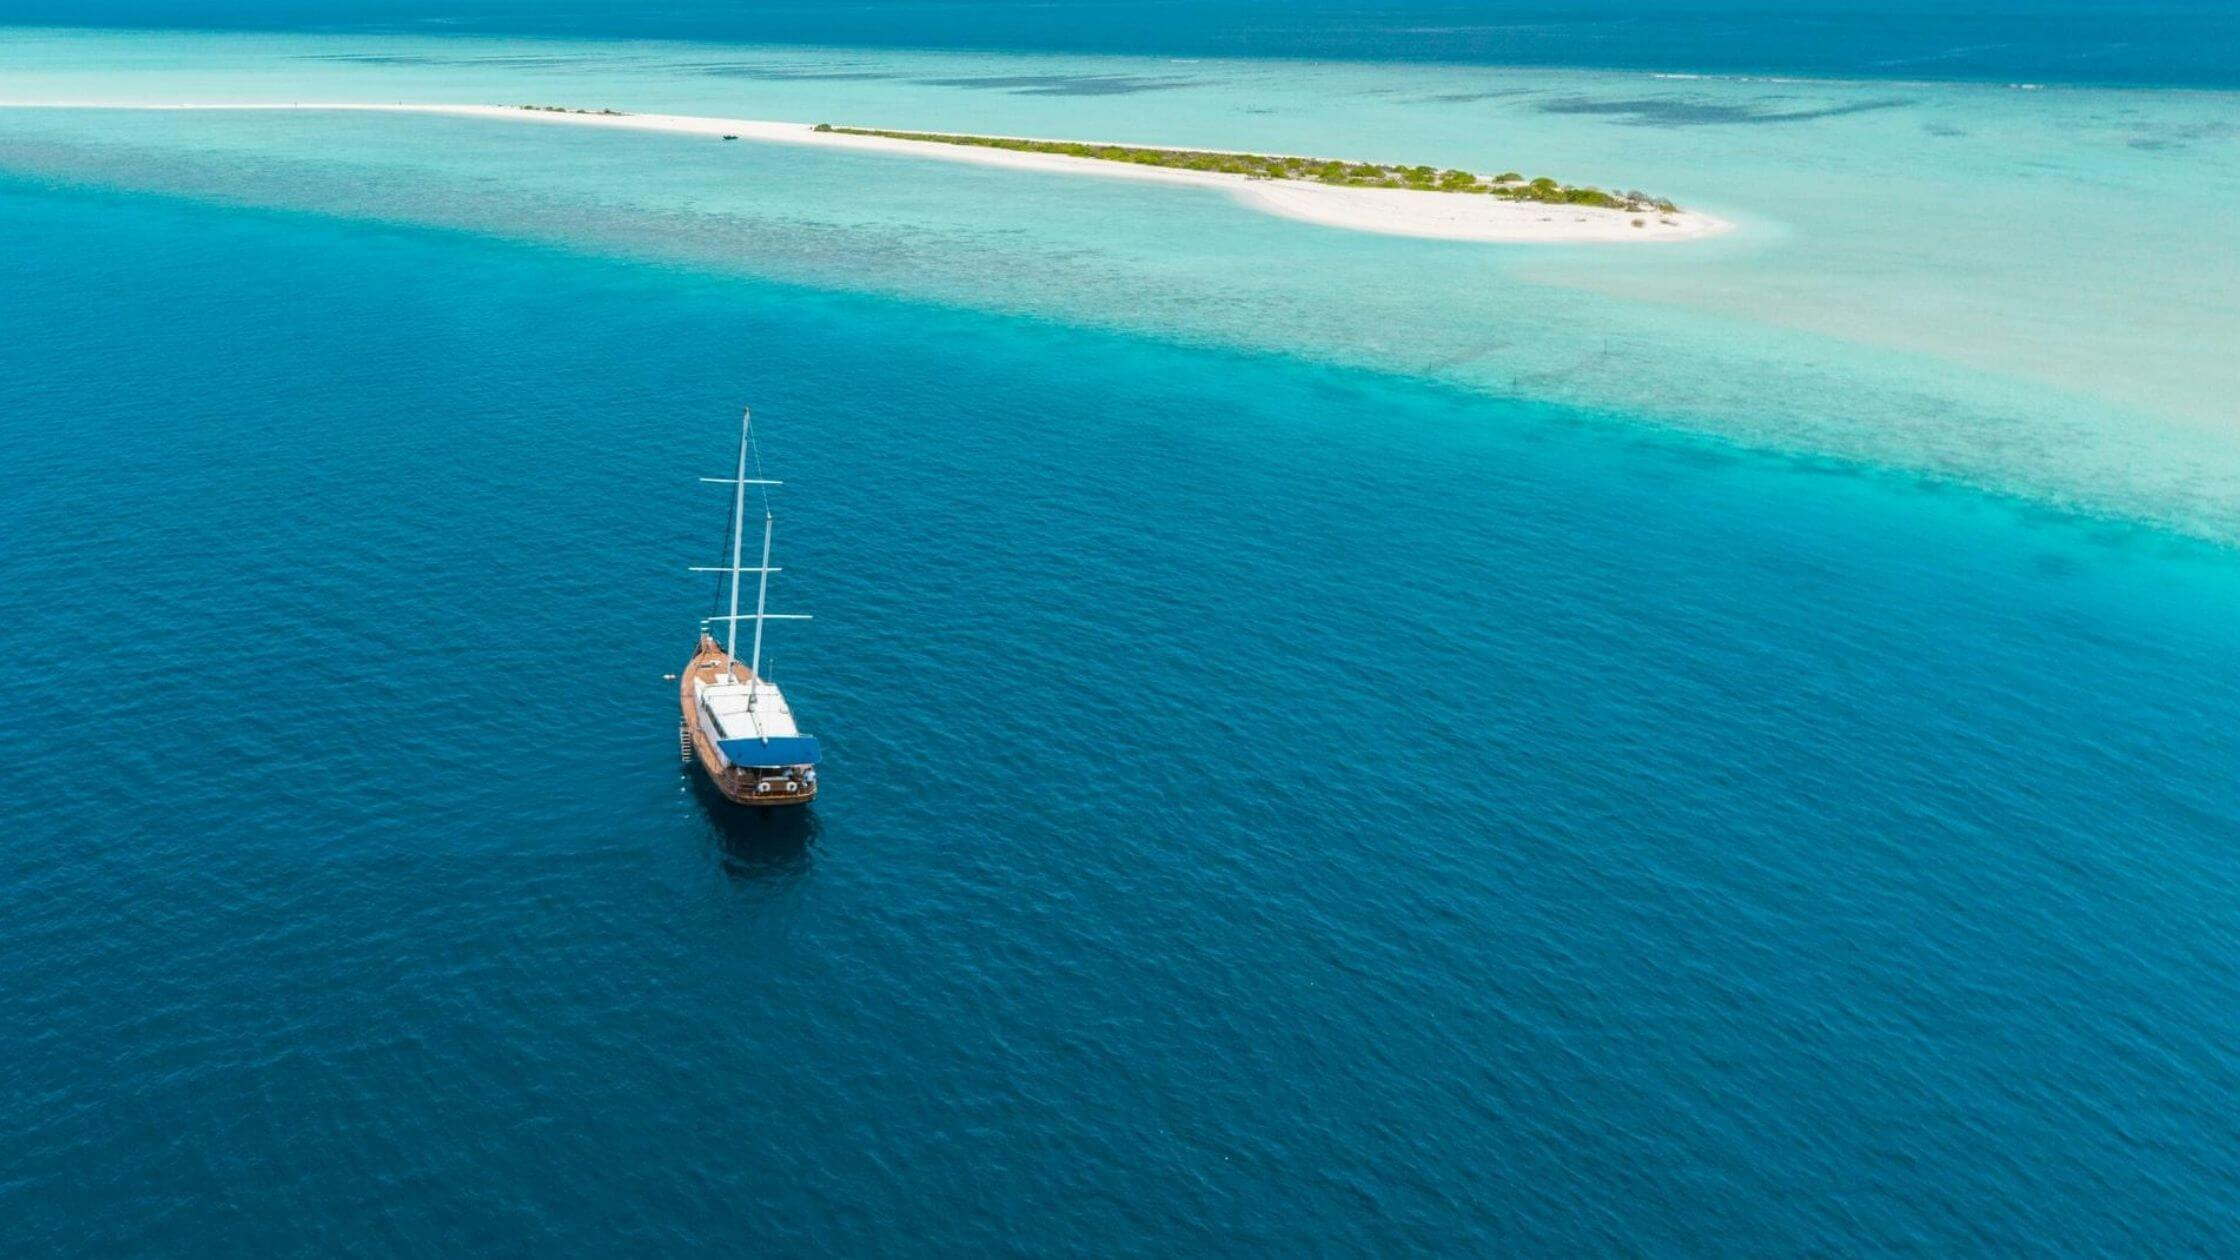 Dhonis - Traditional Maldivian Wooden Boats